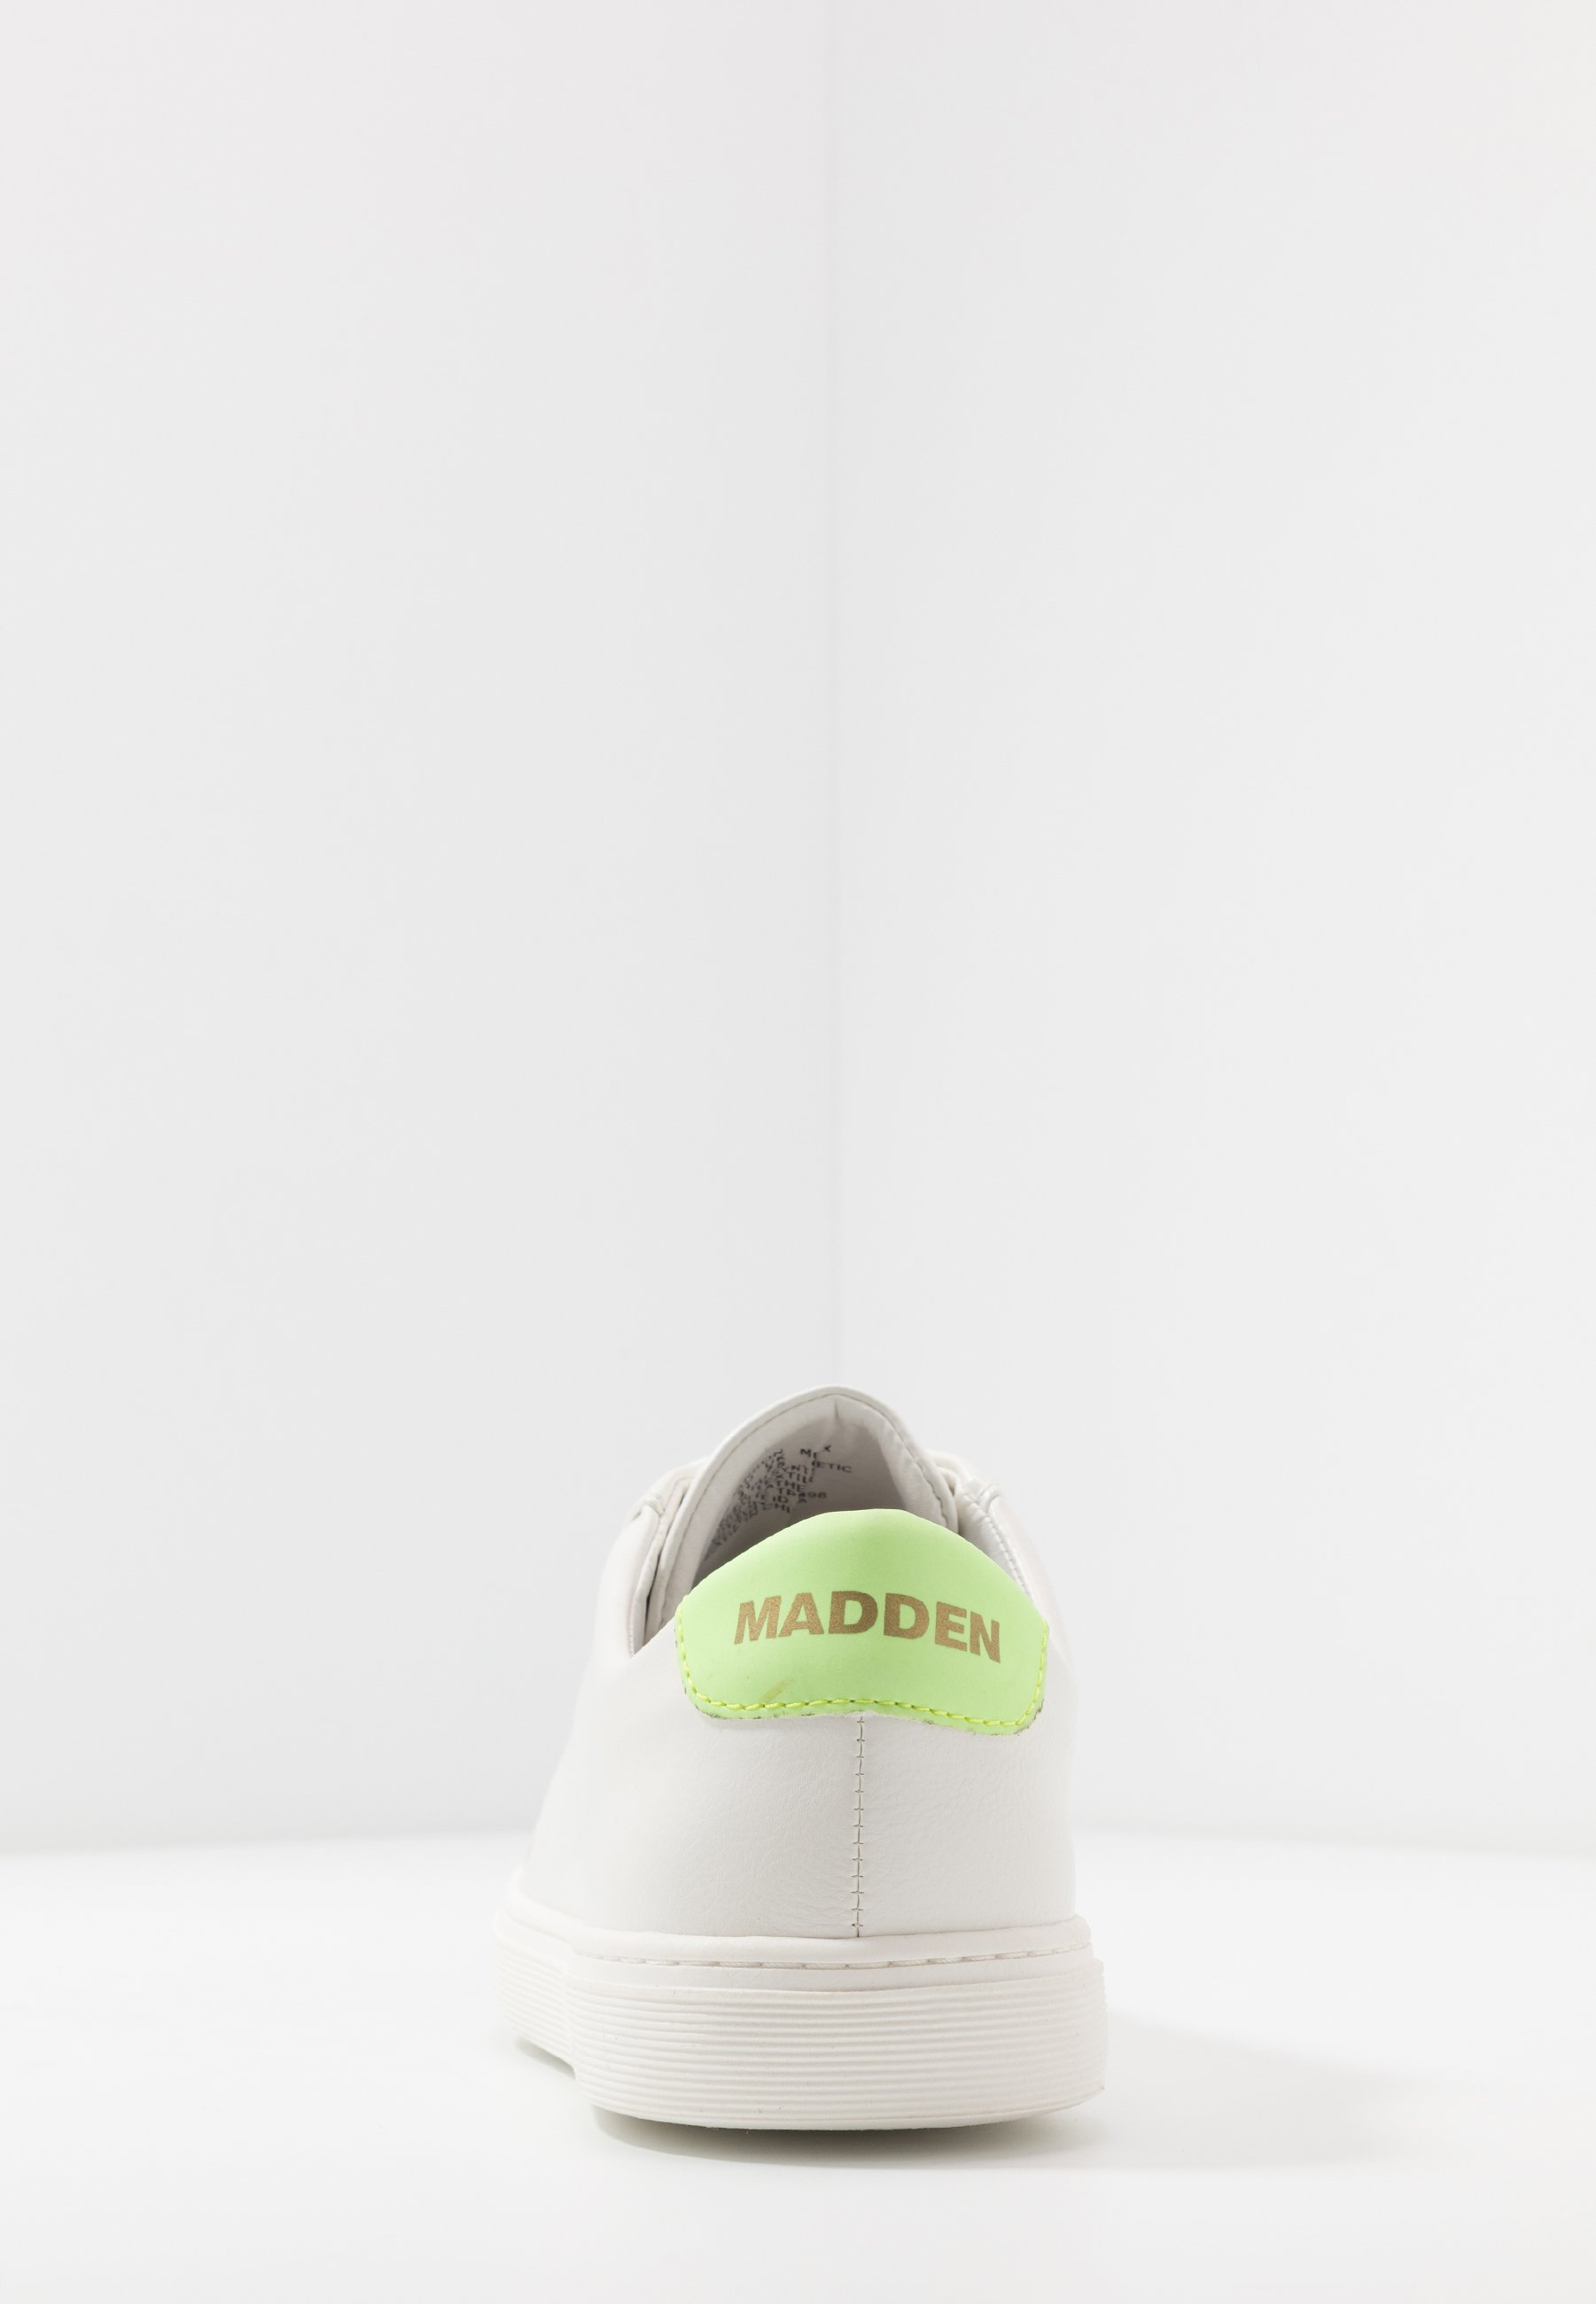 Madden By Steve Darson - Baskets Basses White/green